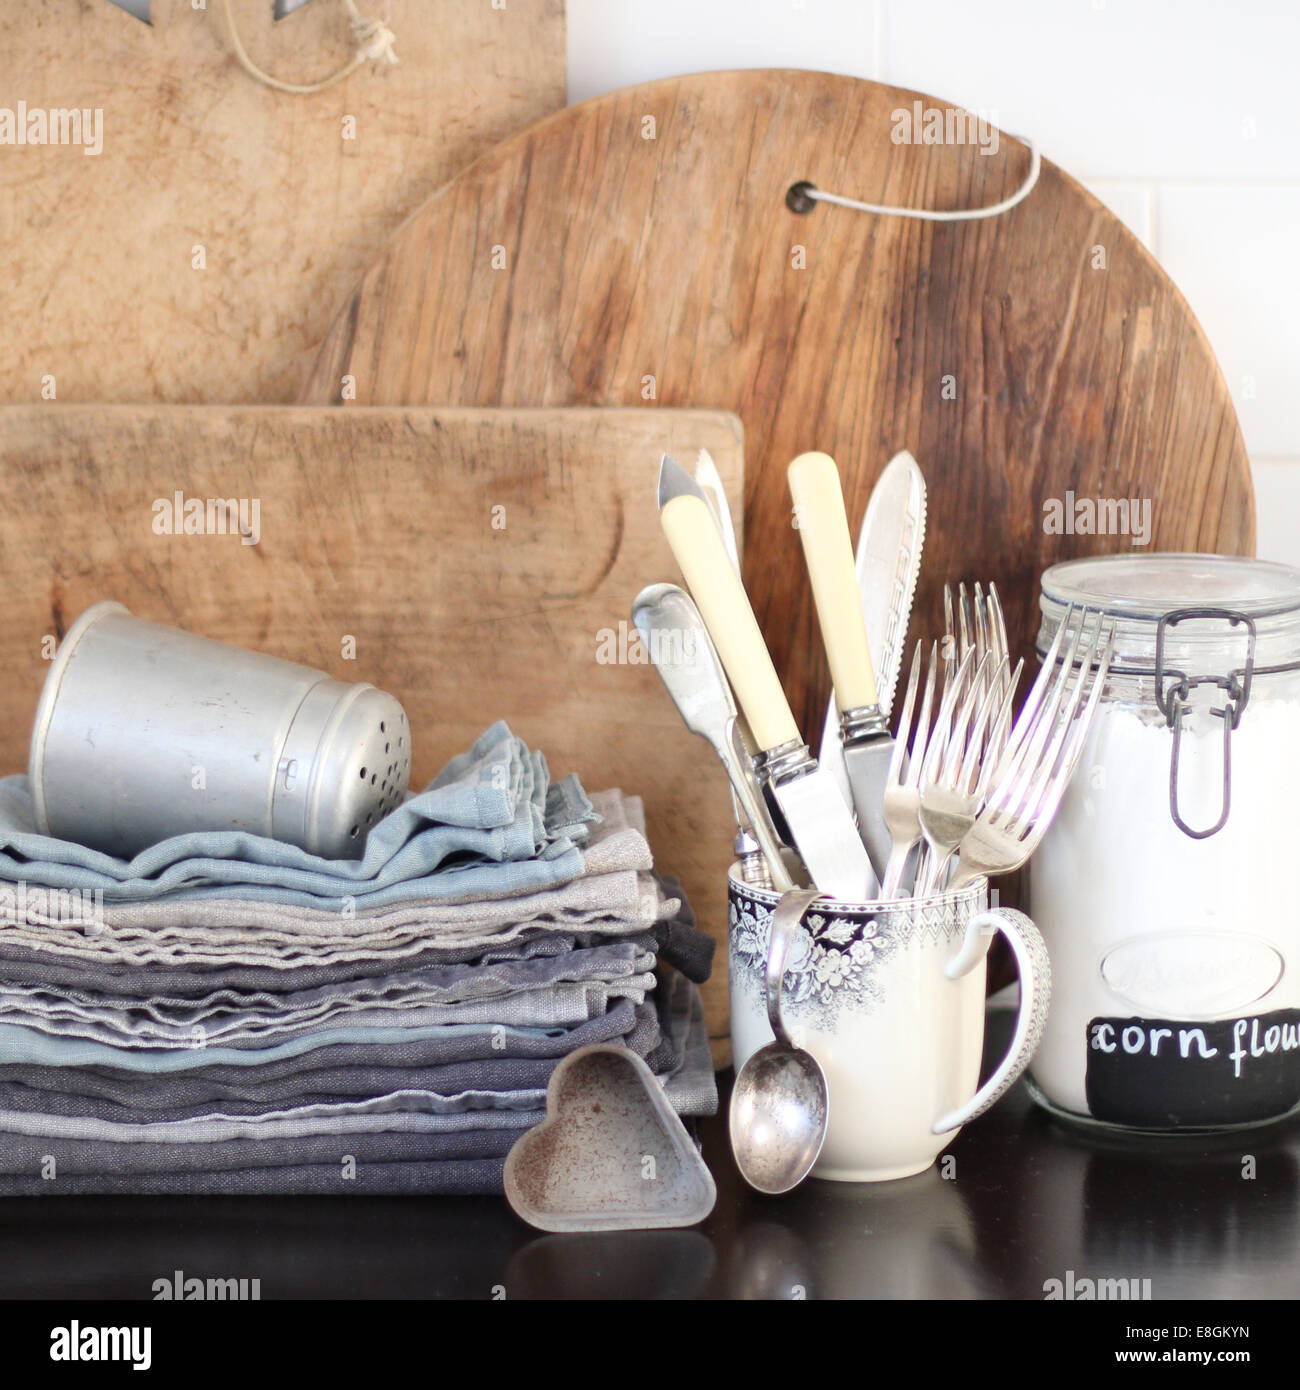 Chopping boards, napkins and cutlery - Stock Image